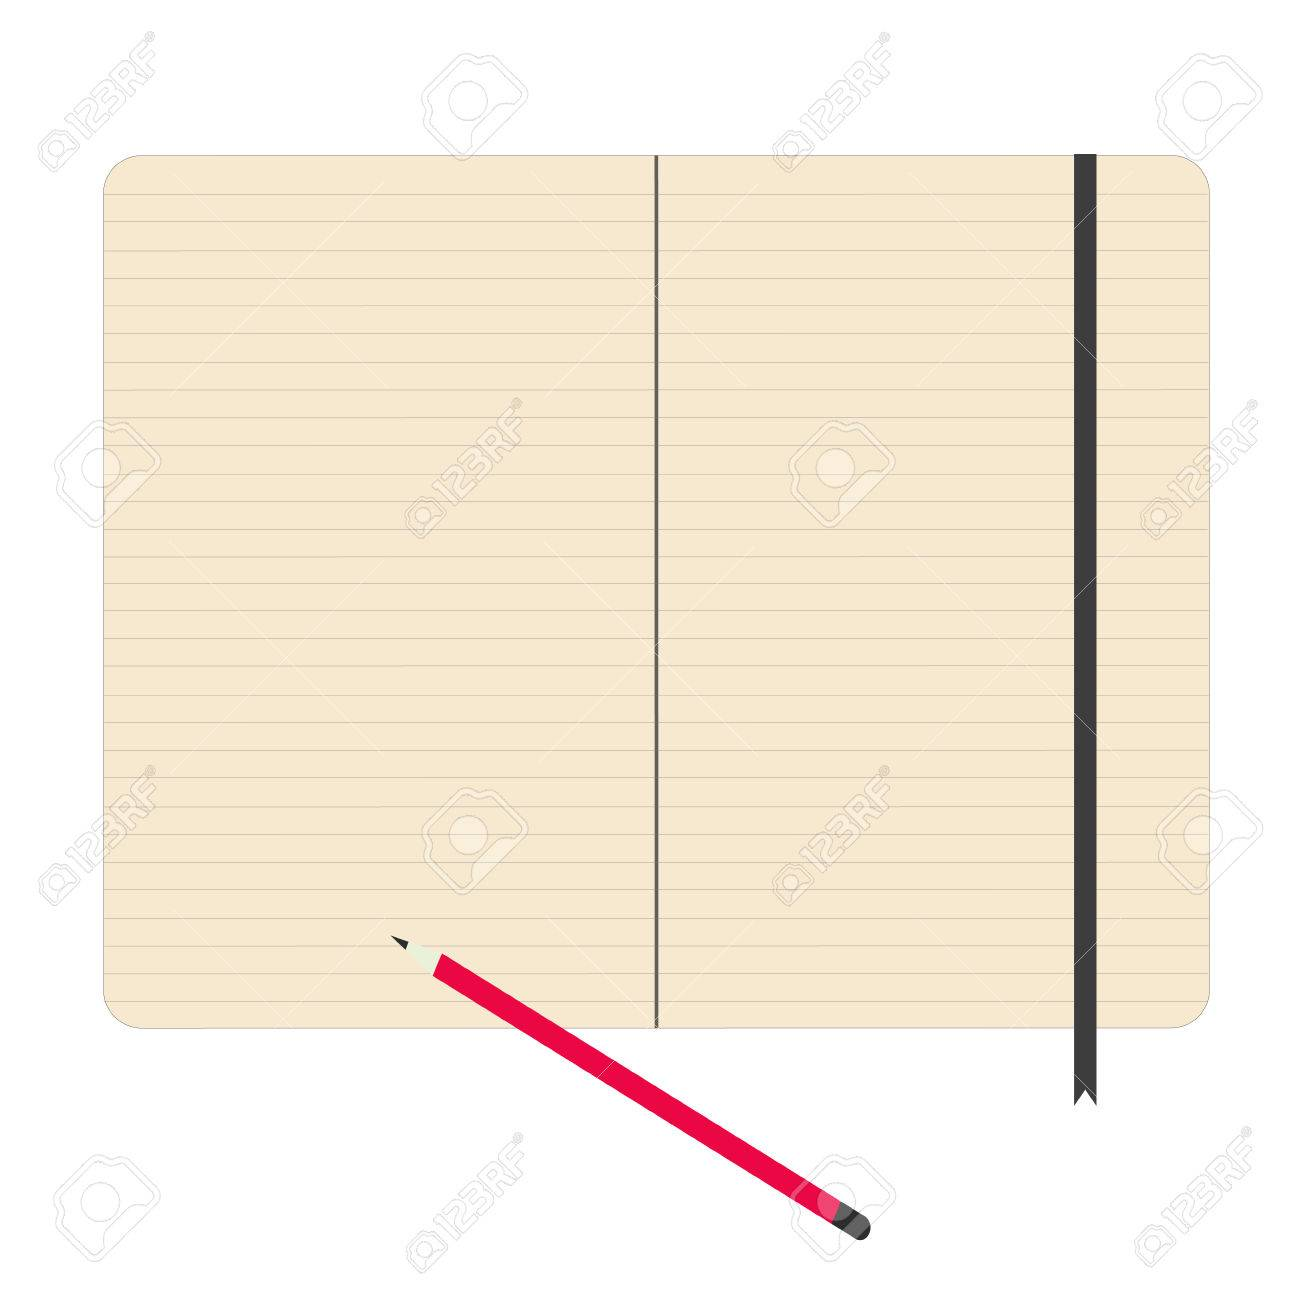 Notebook Paper With Pencil Vector Illustration Royalty Free Cliparts